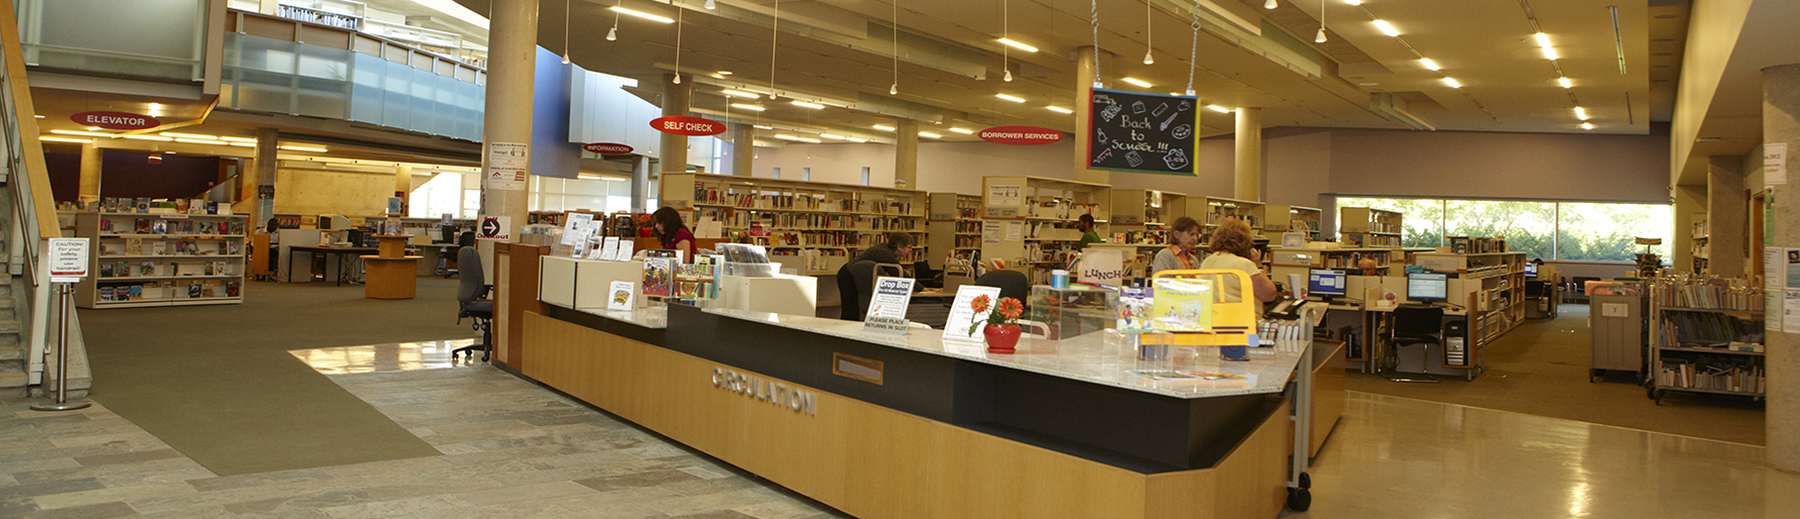 Front counter at the Ajax Public Library